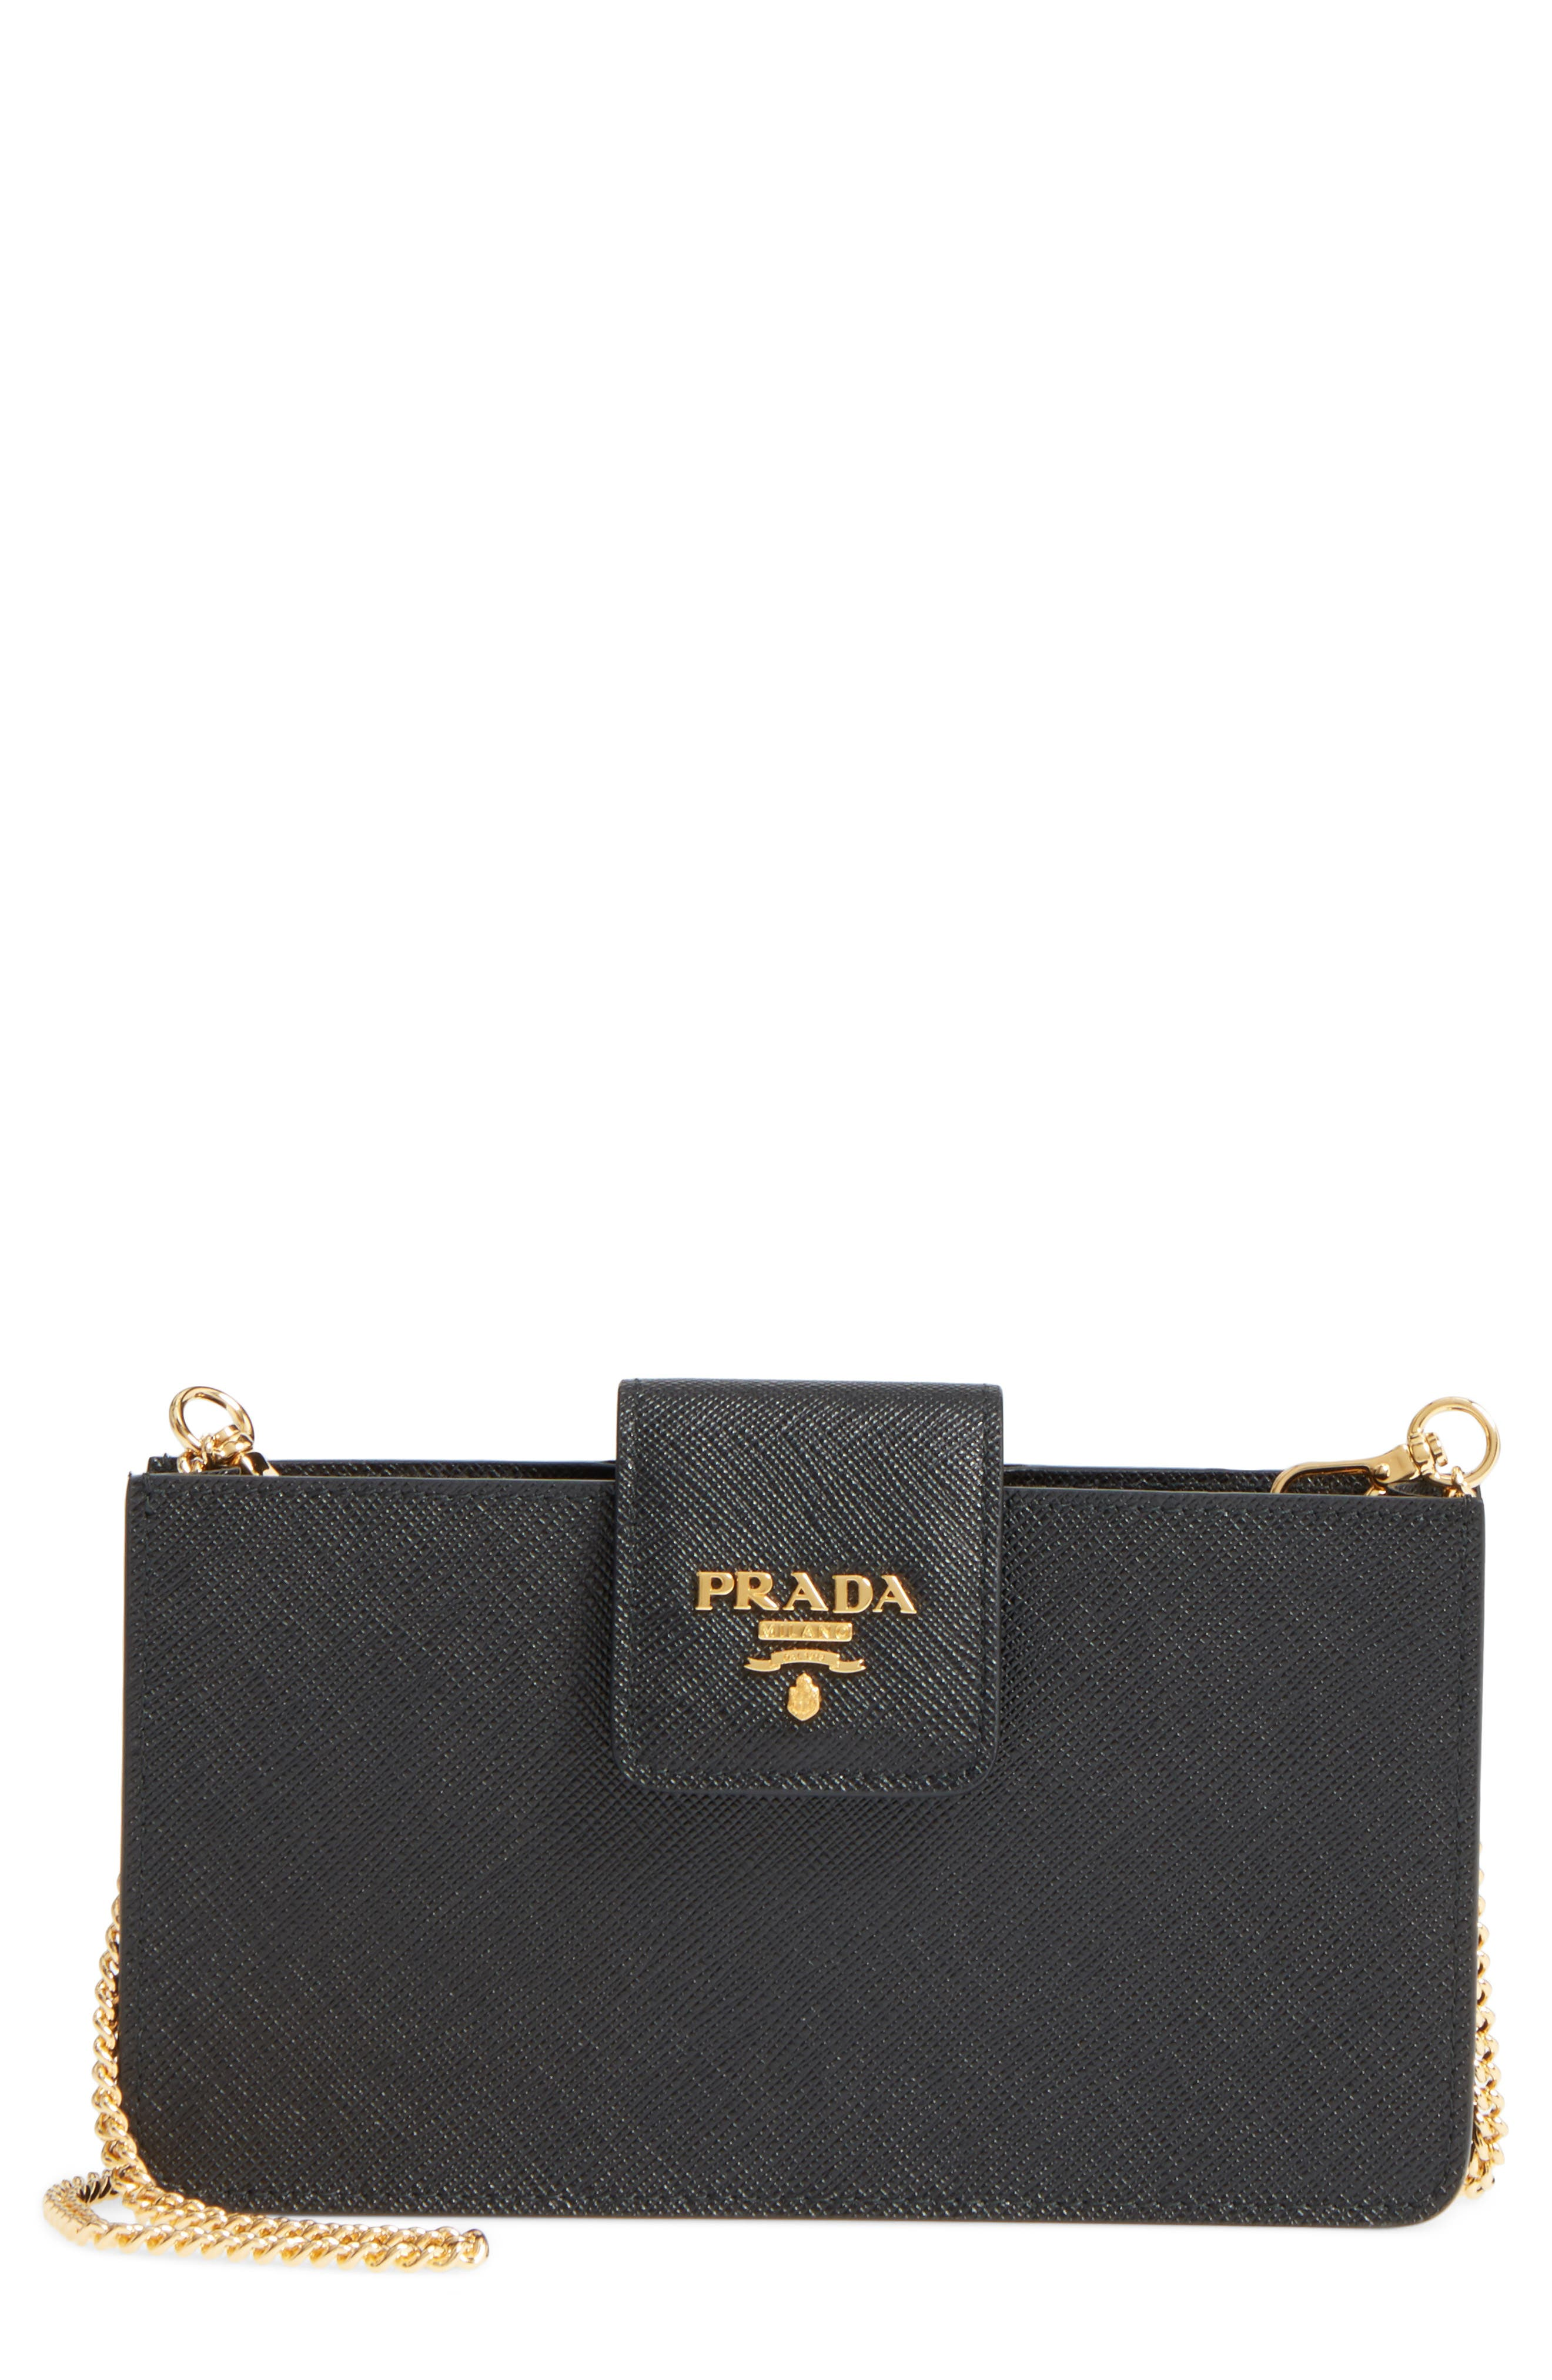 Alternate Image 1 Selected - Prada Saffiano Leather Phone Wallet on a Chain